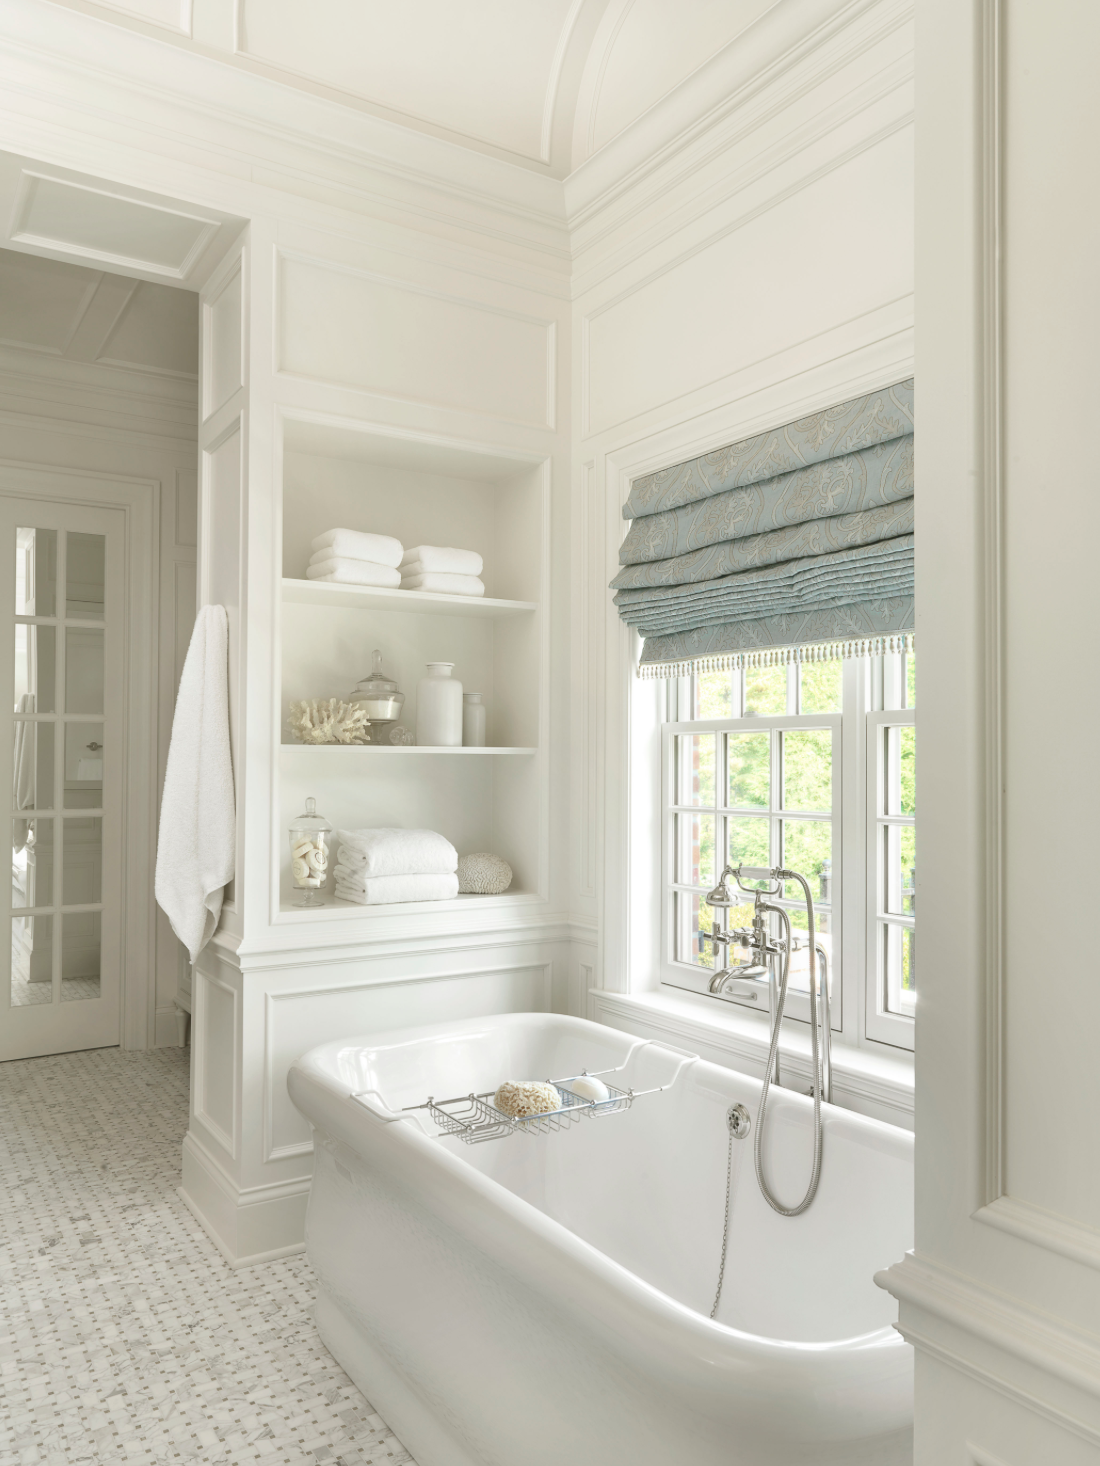 The 15 Most Beautiful Bathrooms on Pinterest | Small ...